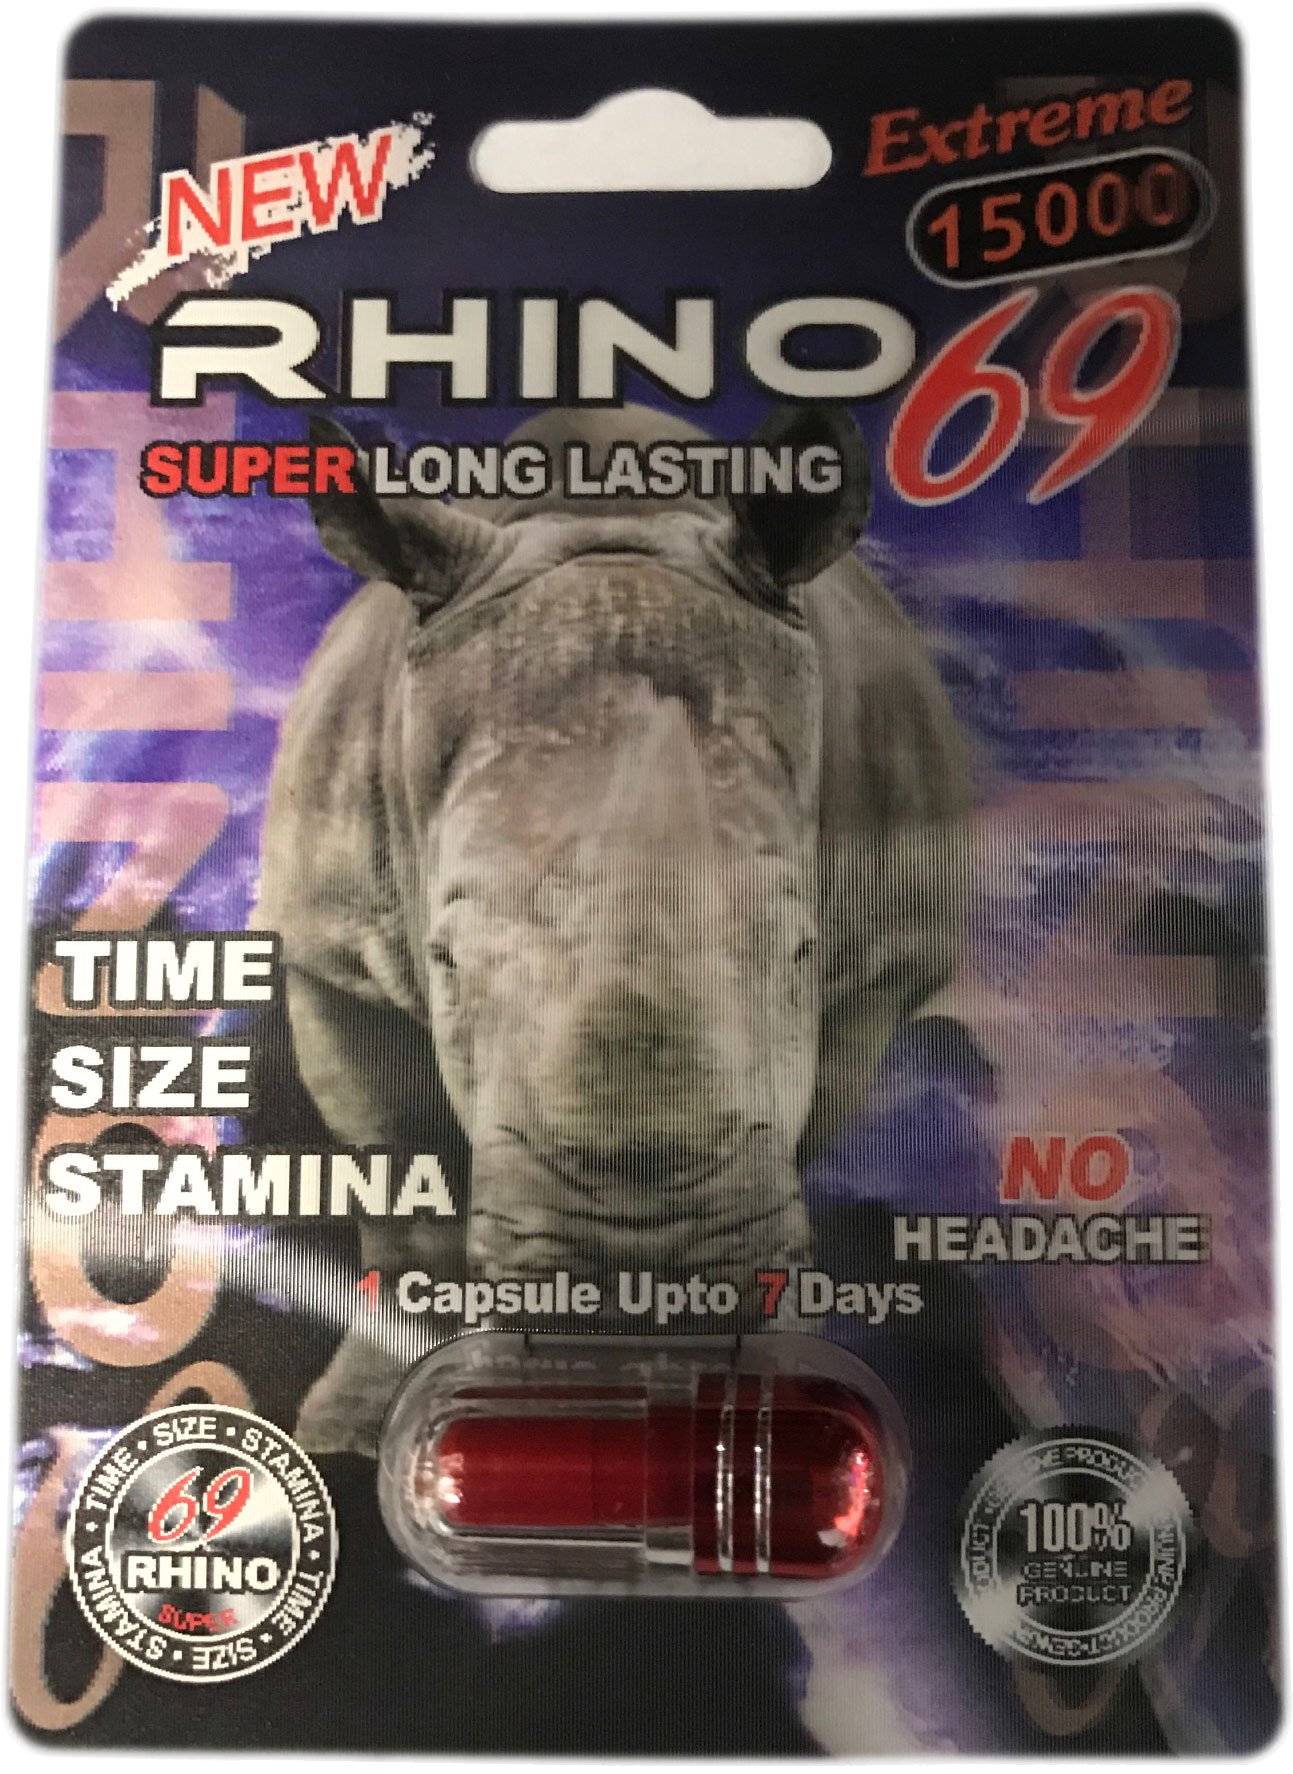 What Are The Ingredients In Rhino 7?